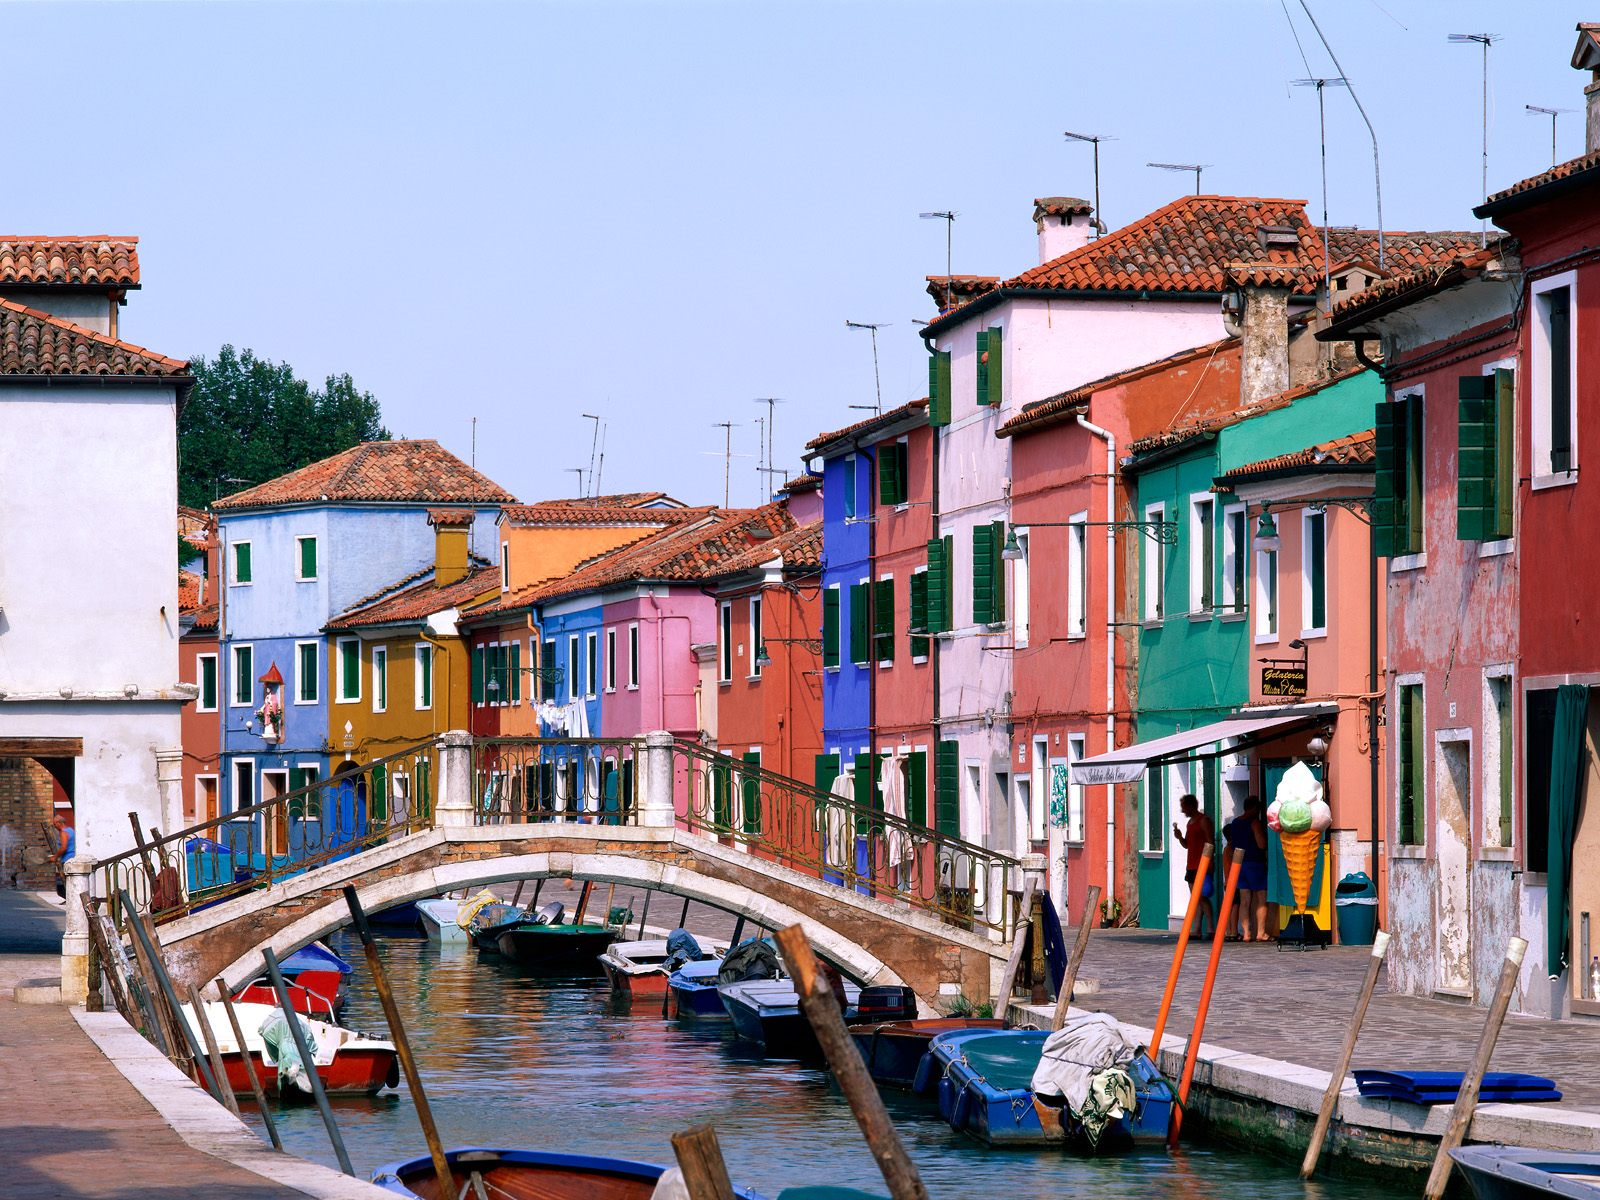 Burano certainly seems to an outsider like a cheerful place to live or